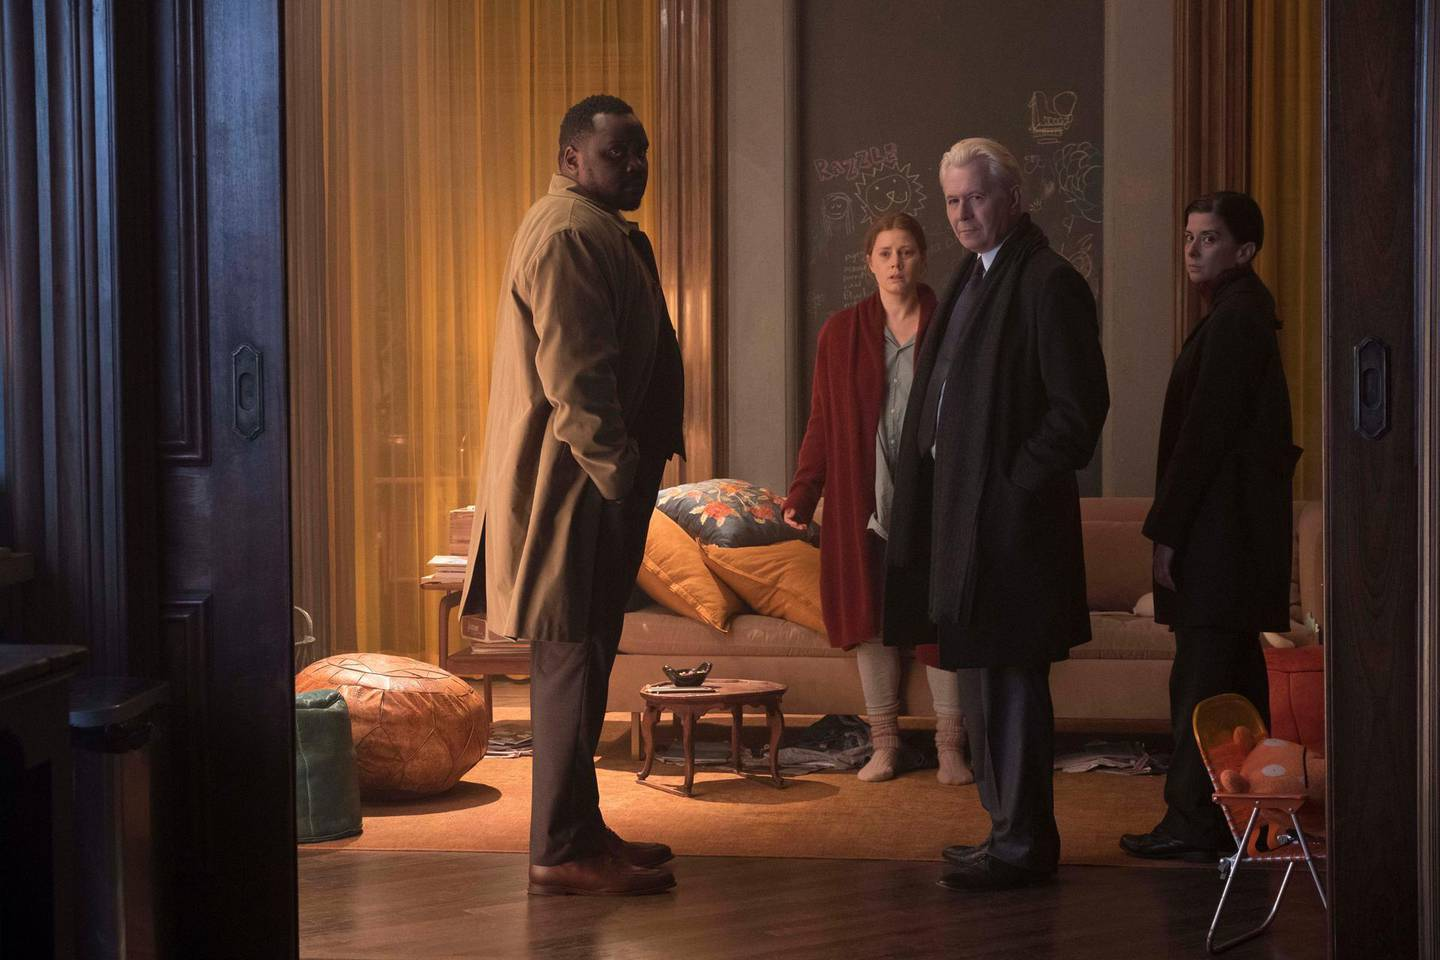 Woman in the Window (2021), L to R: Brian Tyree Henry as Detective Little, Amy Adams as Anna Fox, Gary Oldman as Alistair Russell, and Jeanine Serralles as Detective Norelli. Melinda Sue Gordon / Netflix